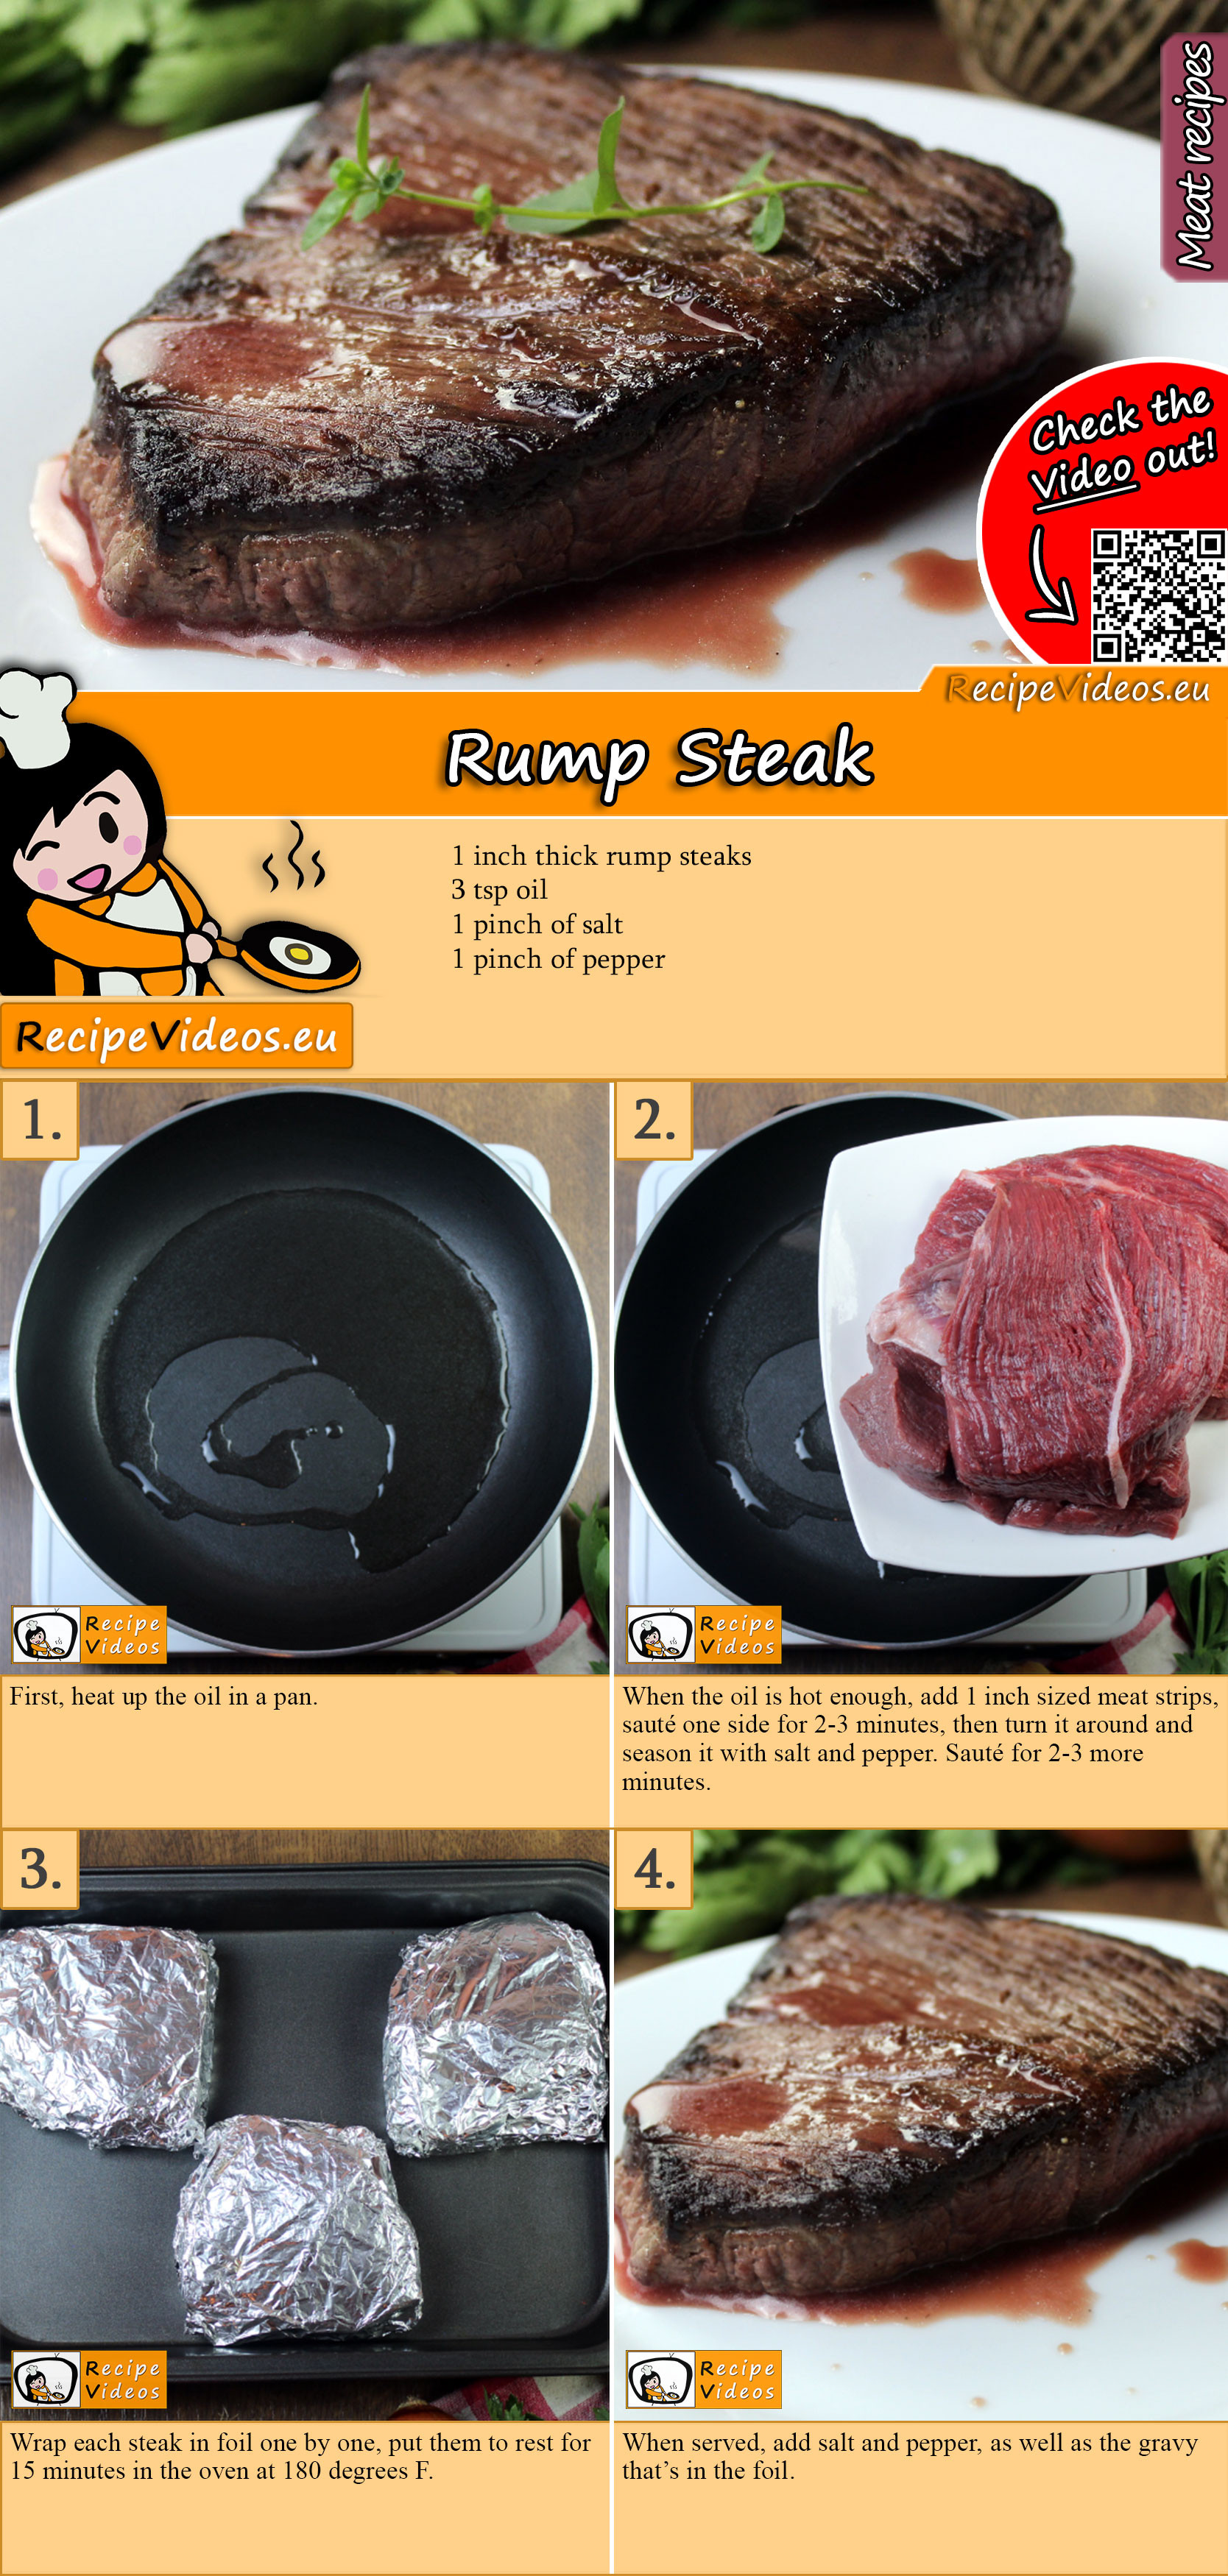 Rump Steak recipe with video